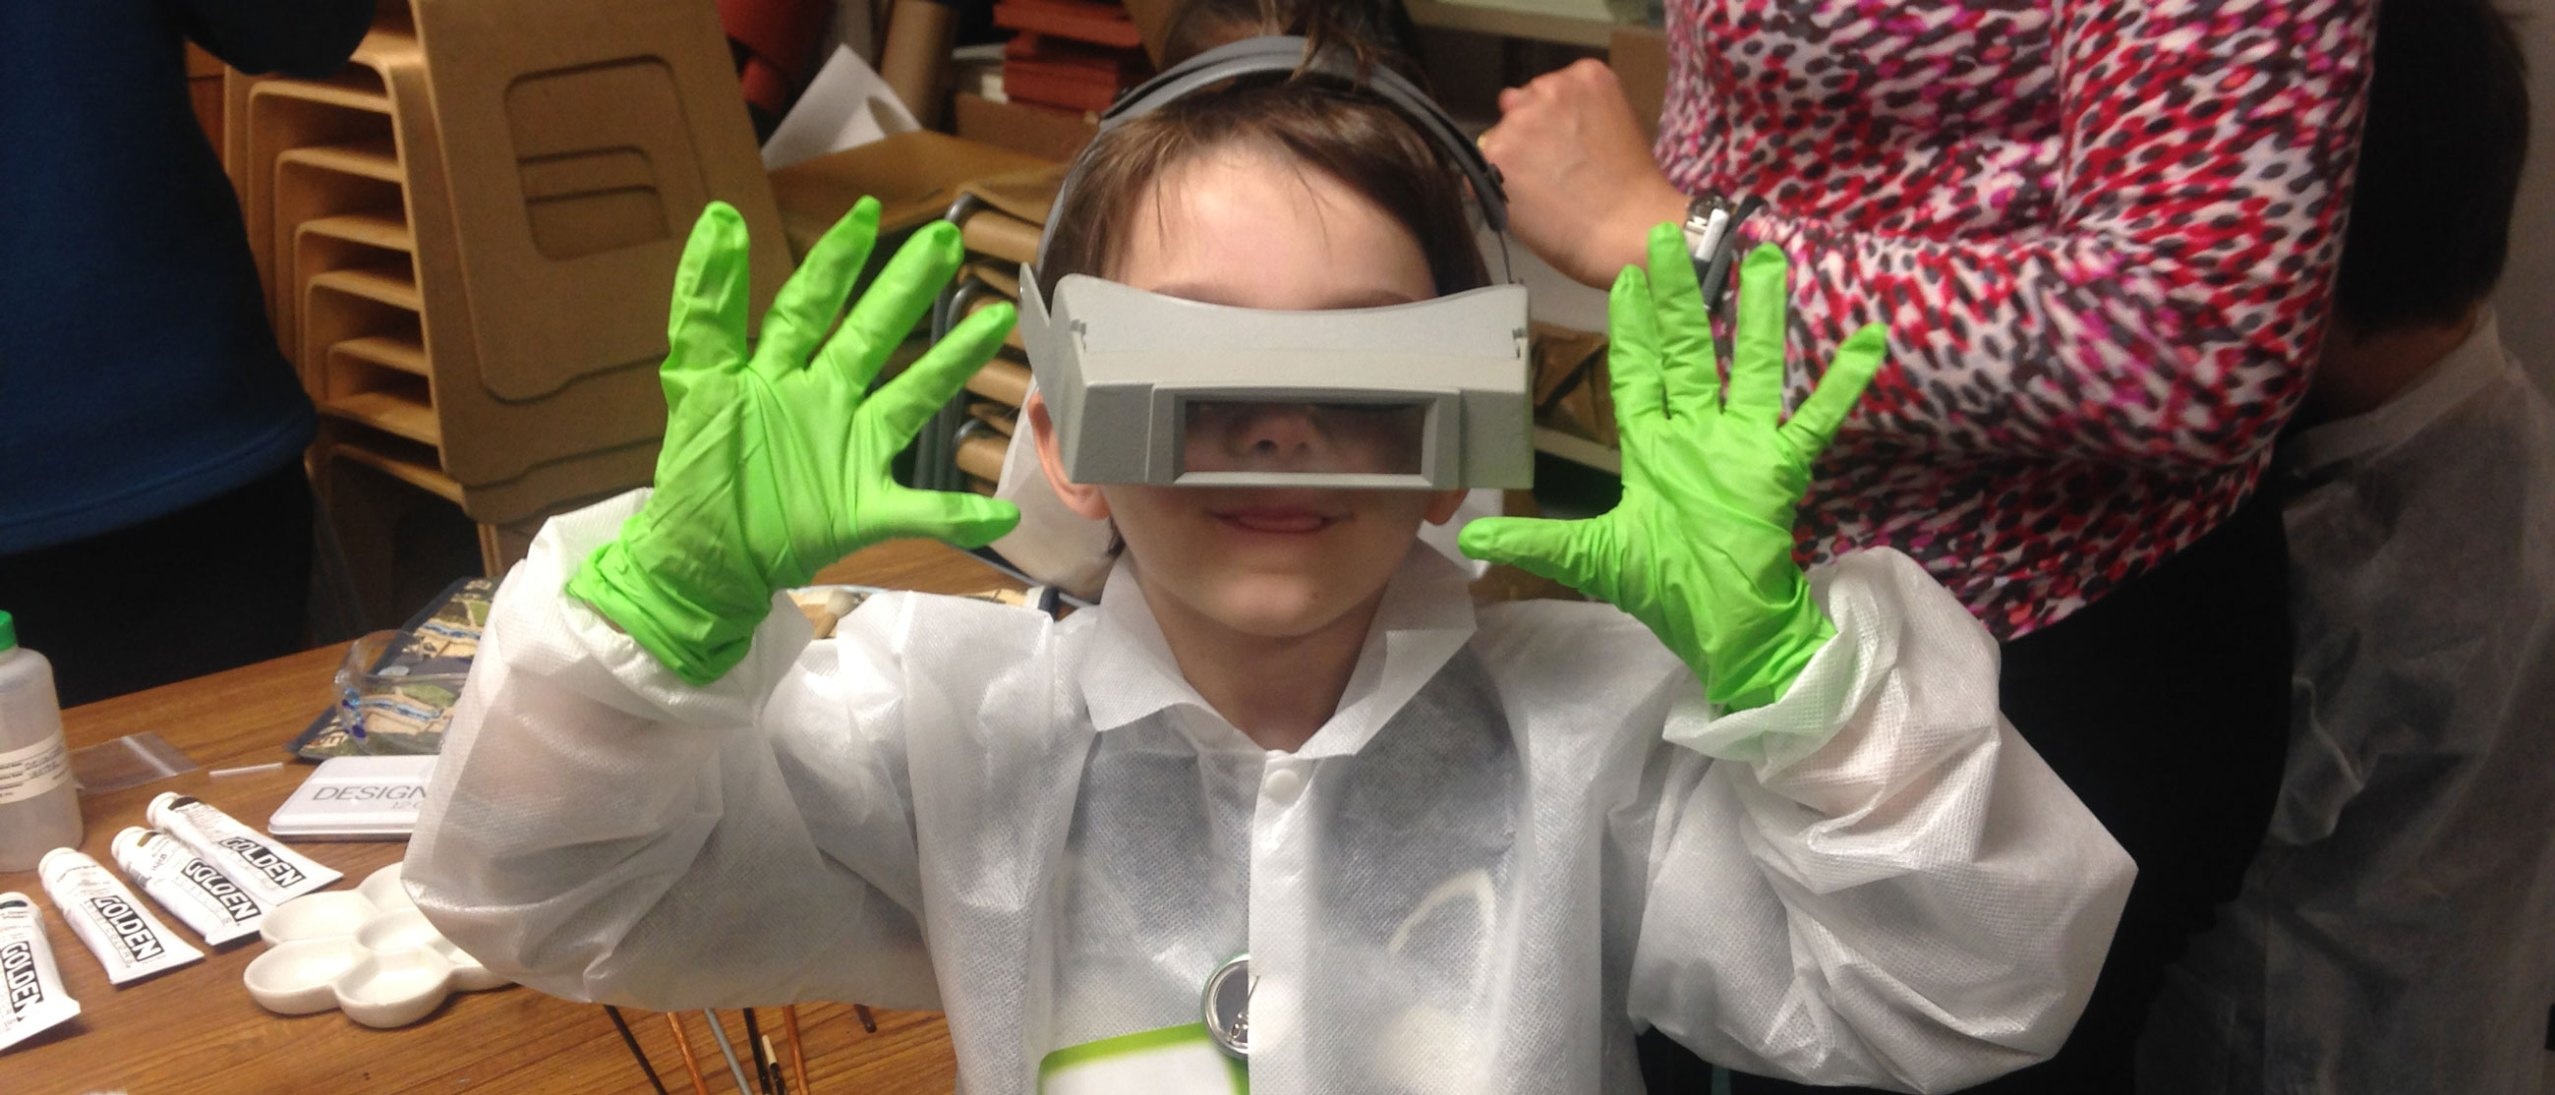 A boy shows off his gloves and safety goggles while attending the Art and Me Conservation workshop